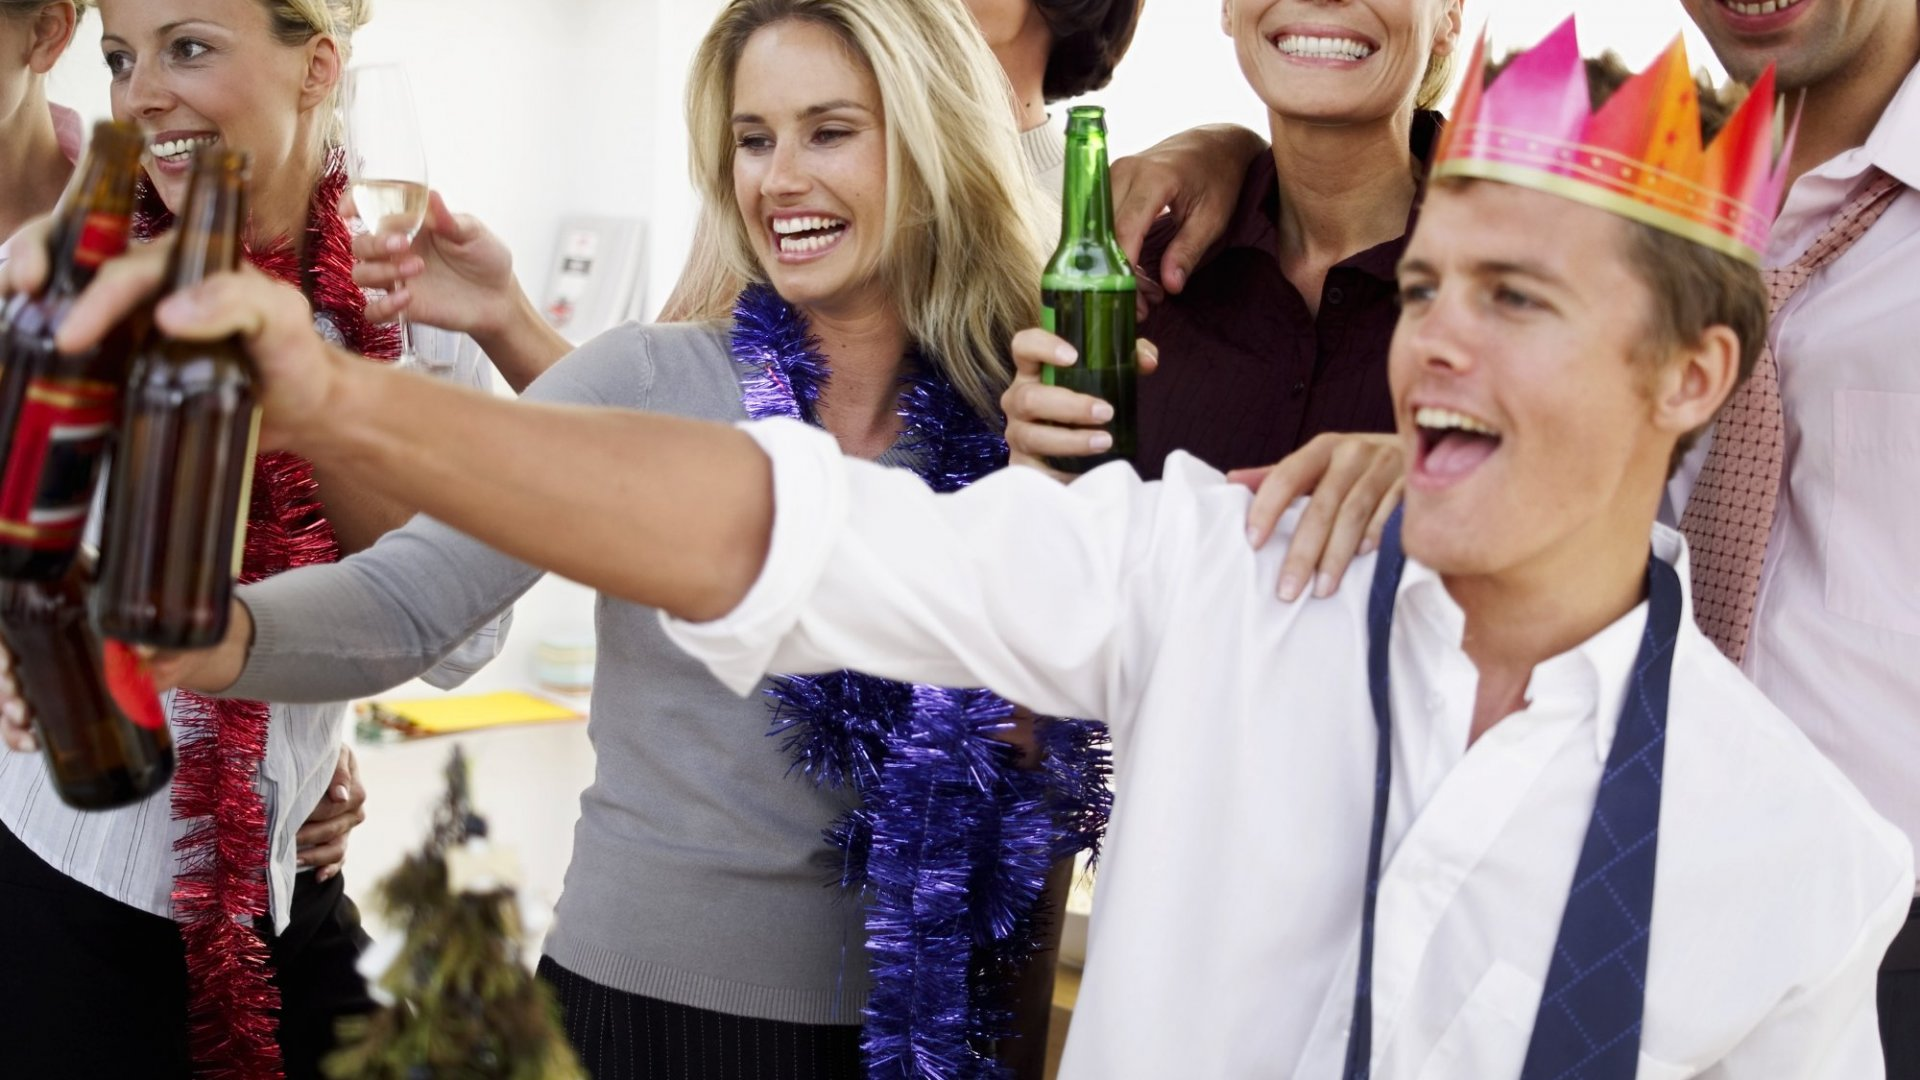 25 Bad Holiday Party Behaviors That Everyone Should Avoid